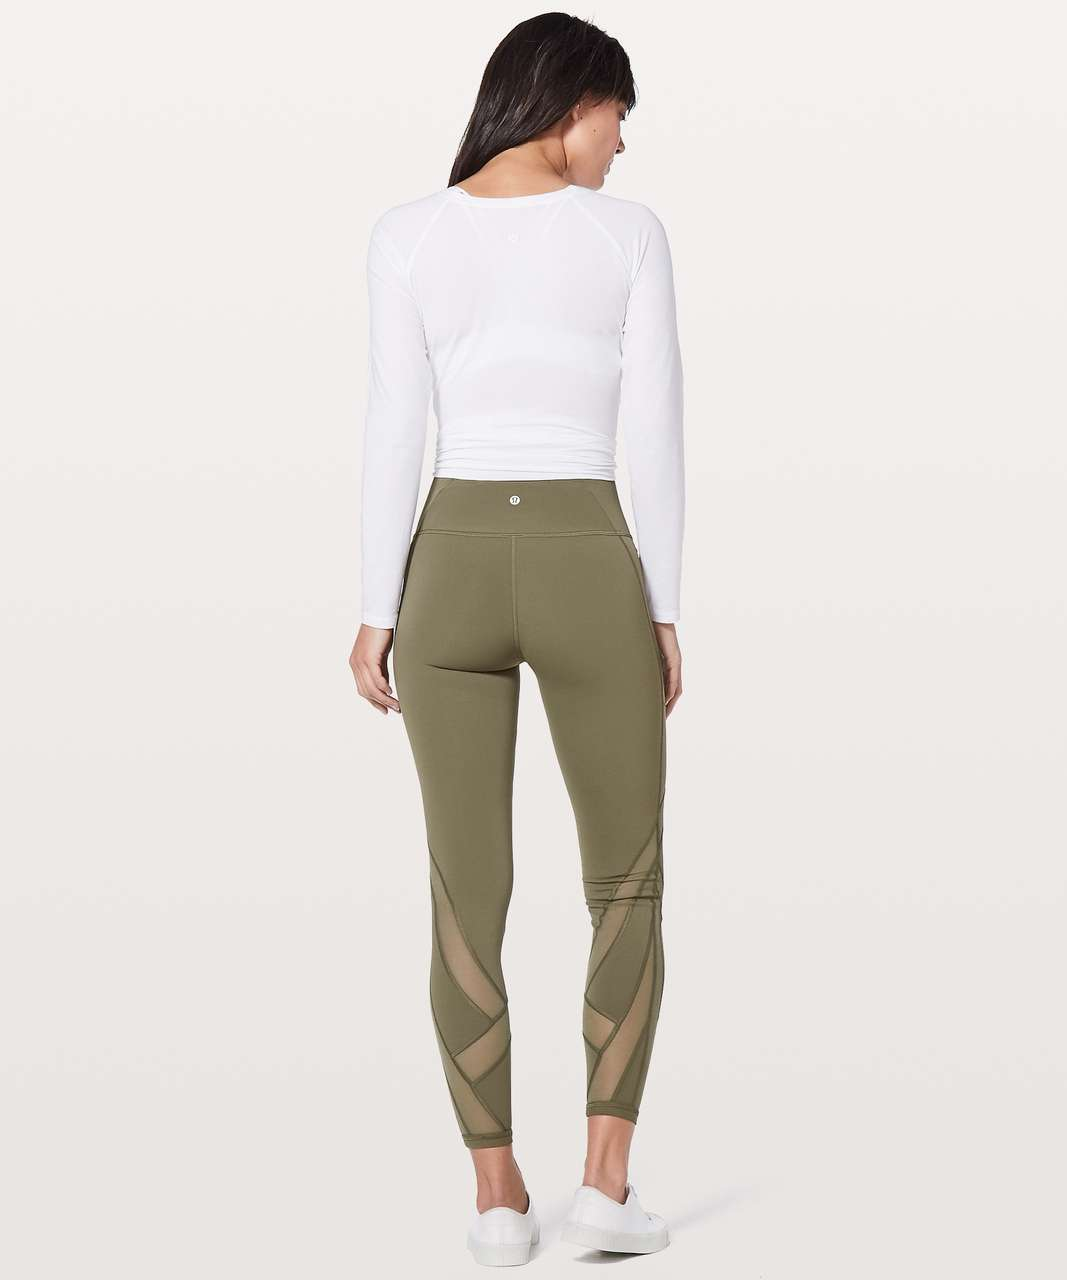 "Lululemon Wunder Under Hi-Rise Tight *Mesh 28"" - Sage"